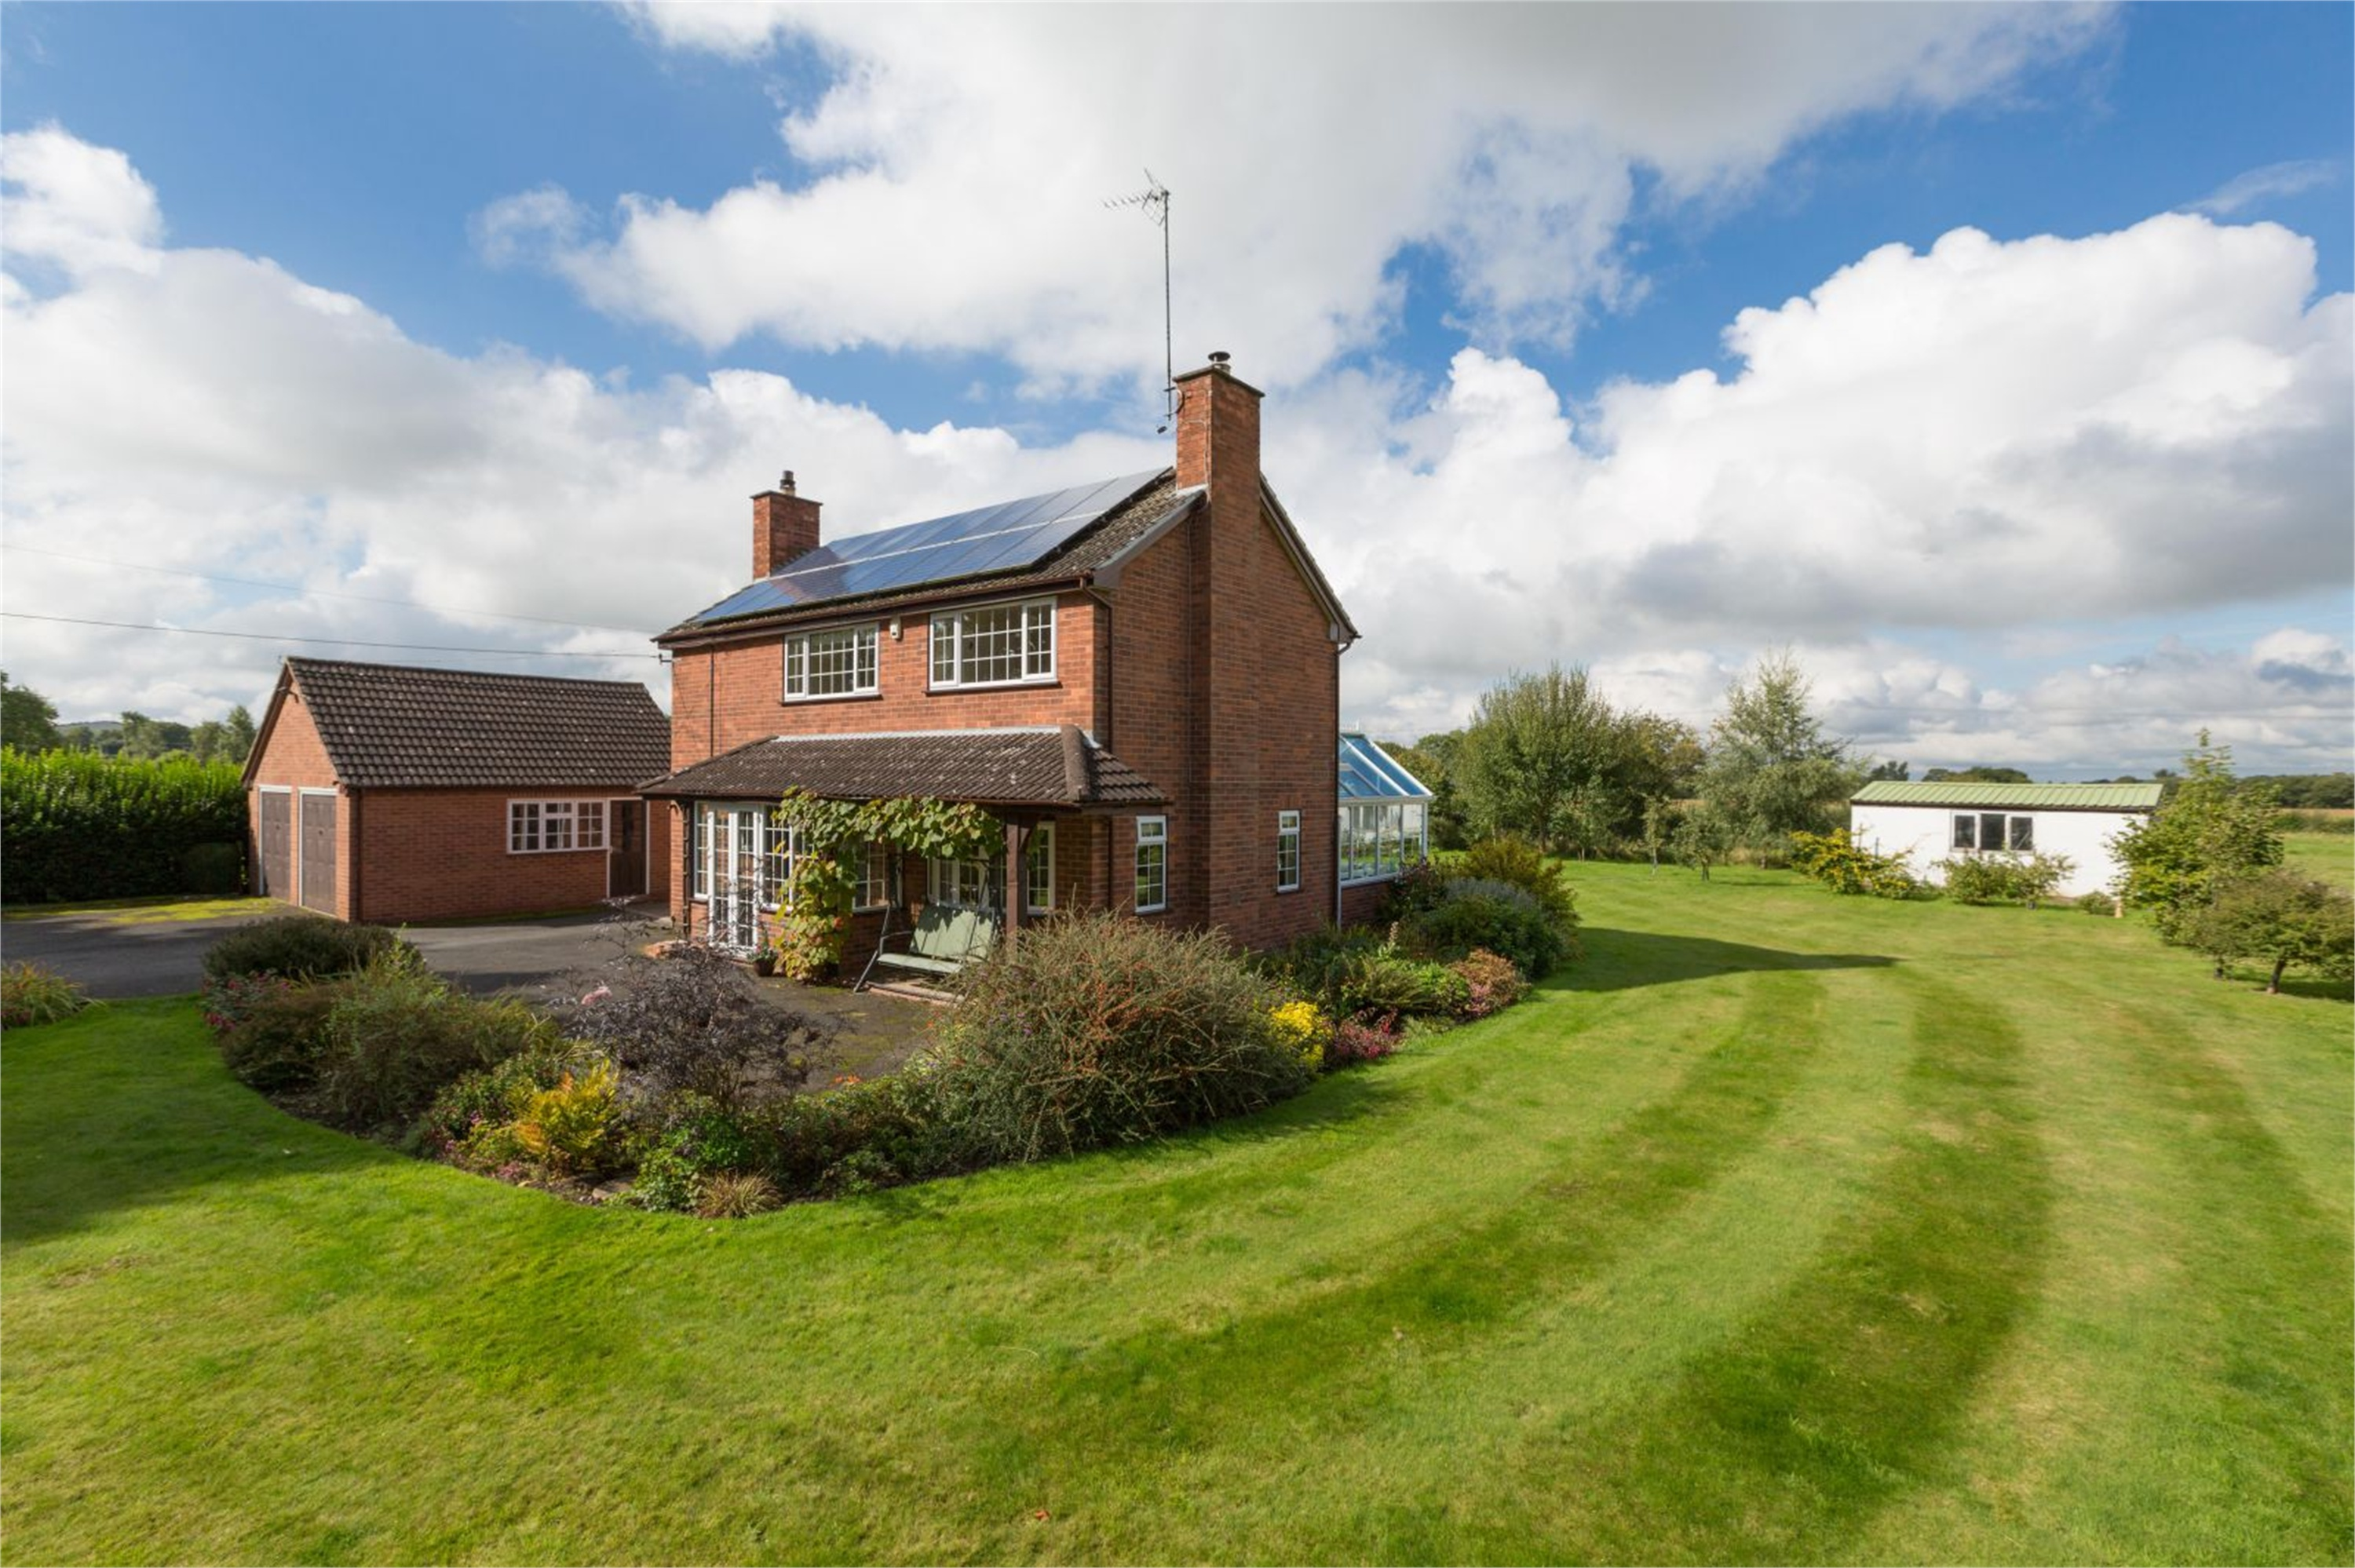 3 Bedrooms Detached House for sale in Riva House, Mill Green, Hinstock, Shropshire, TF9